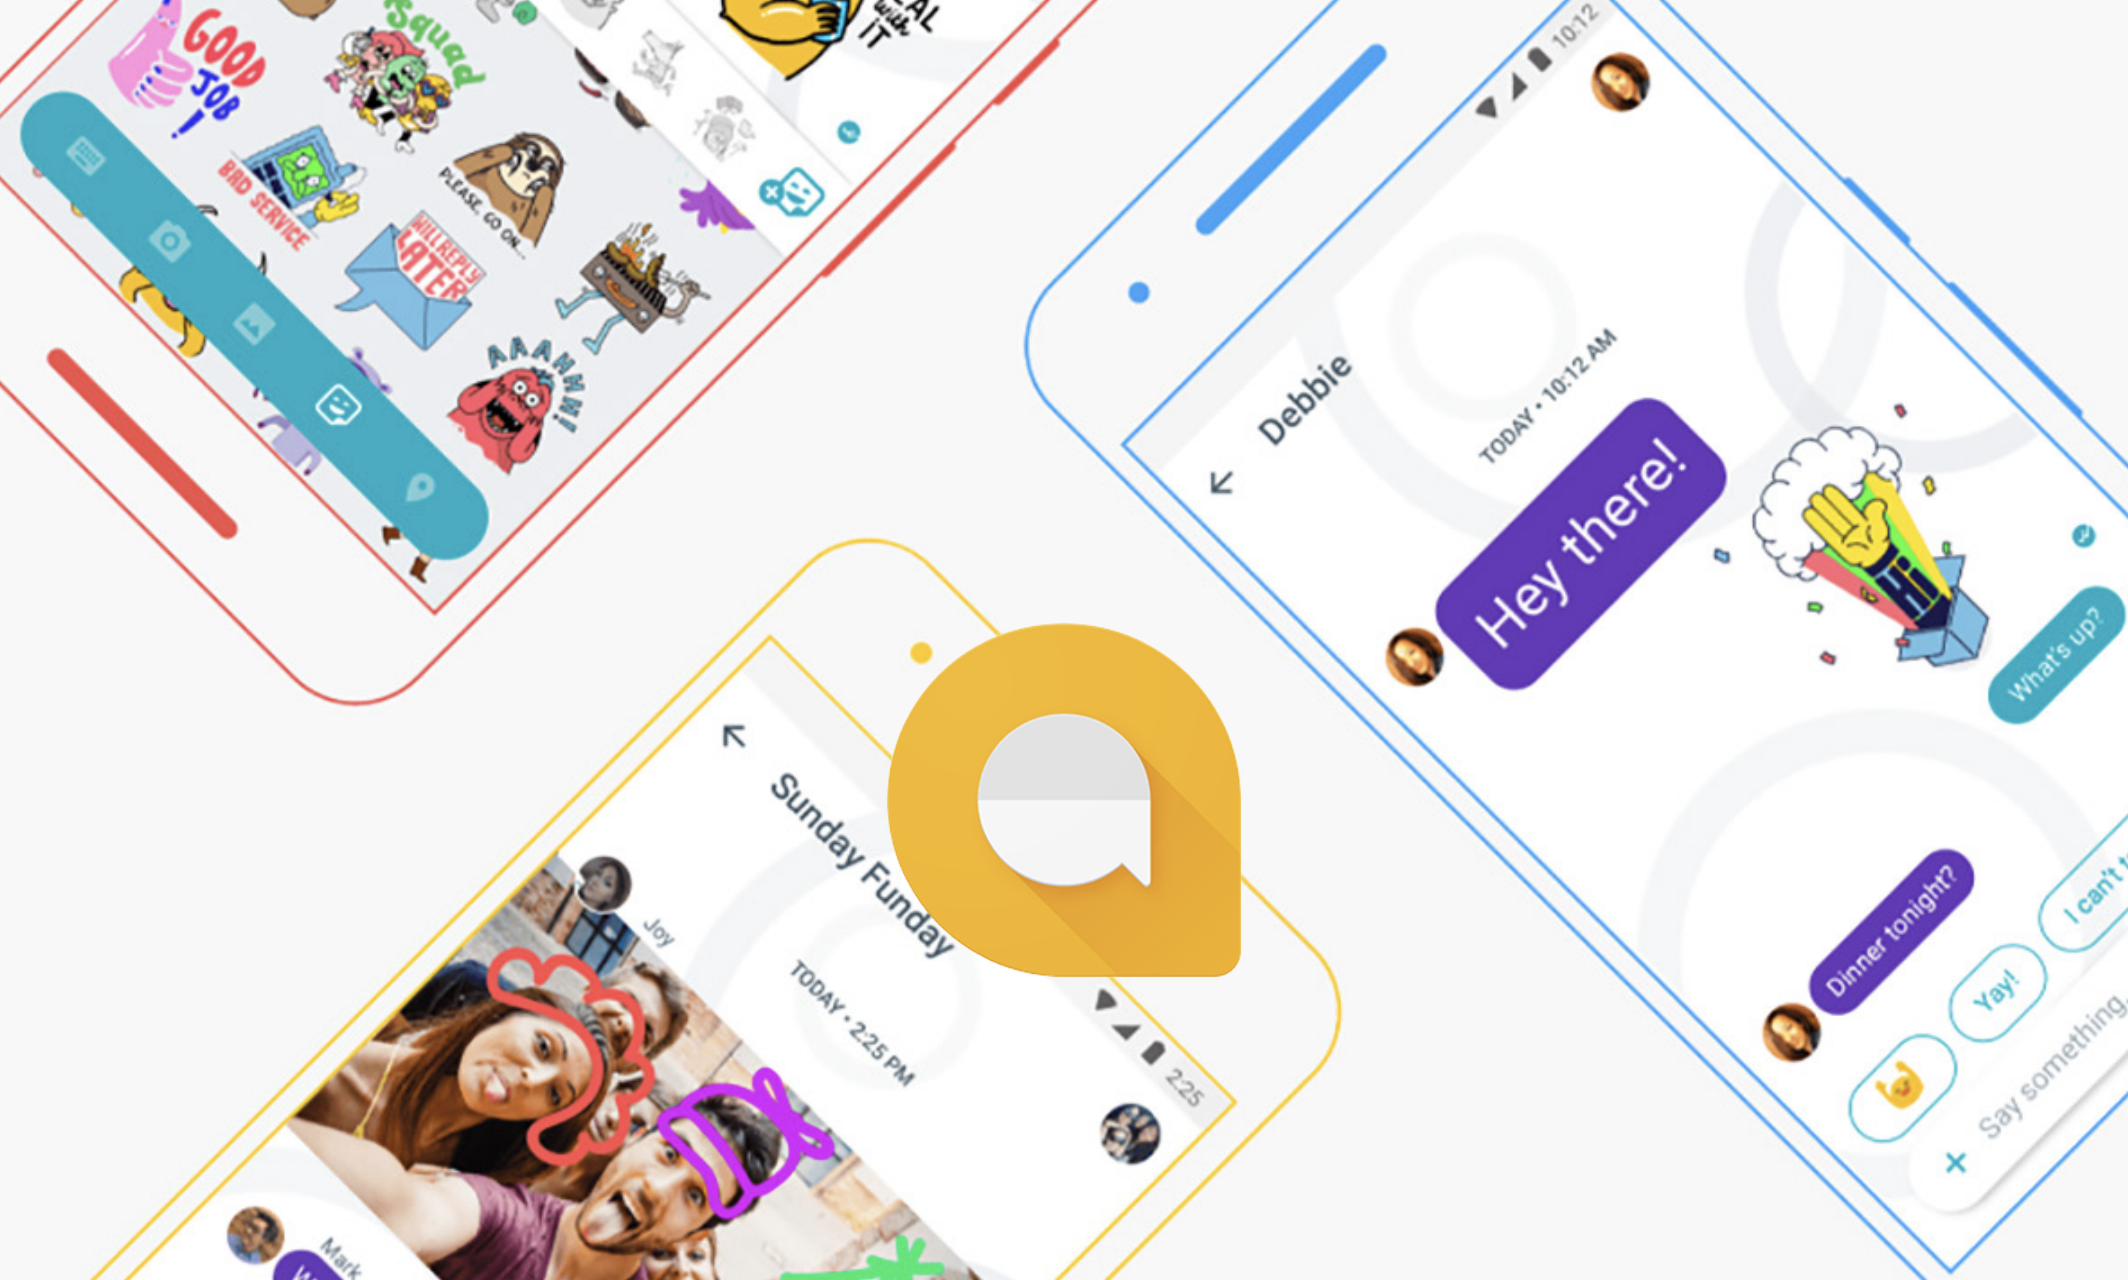 Google Allo Usability Study - HCDE Master's Project